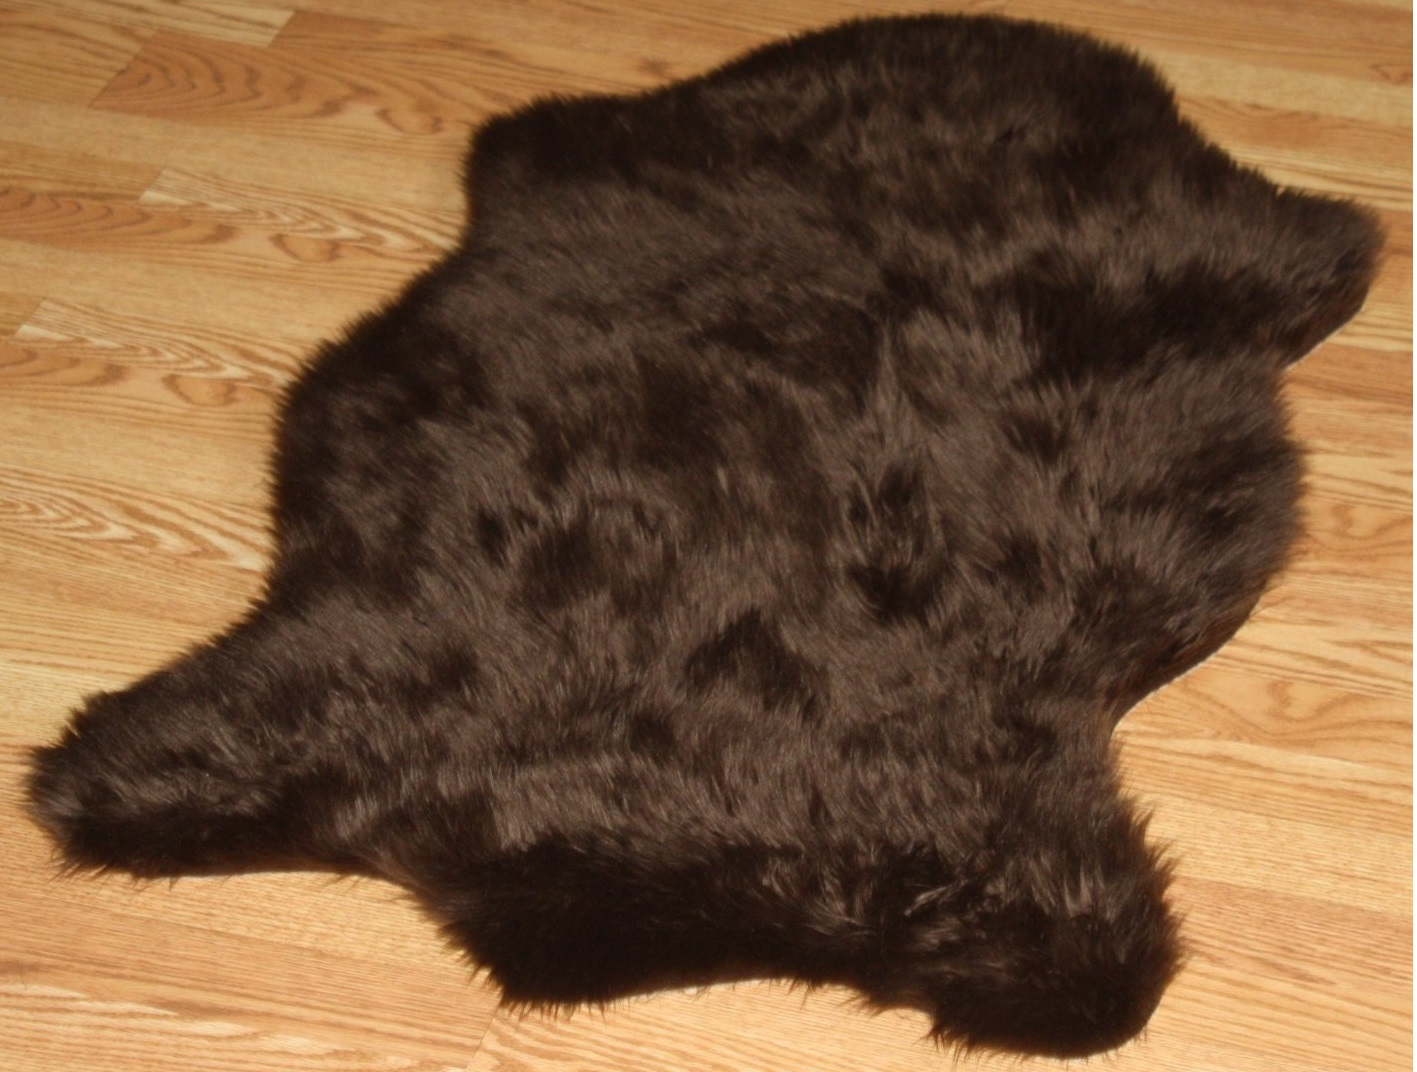 Faux Animal Fur Rug Multiple Colors 24 Quot X 48